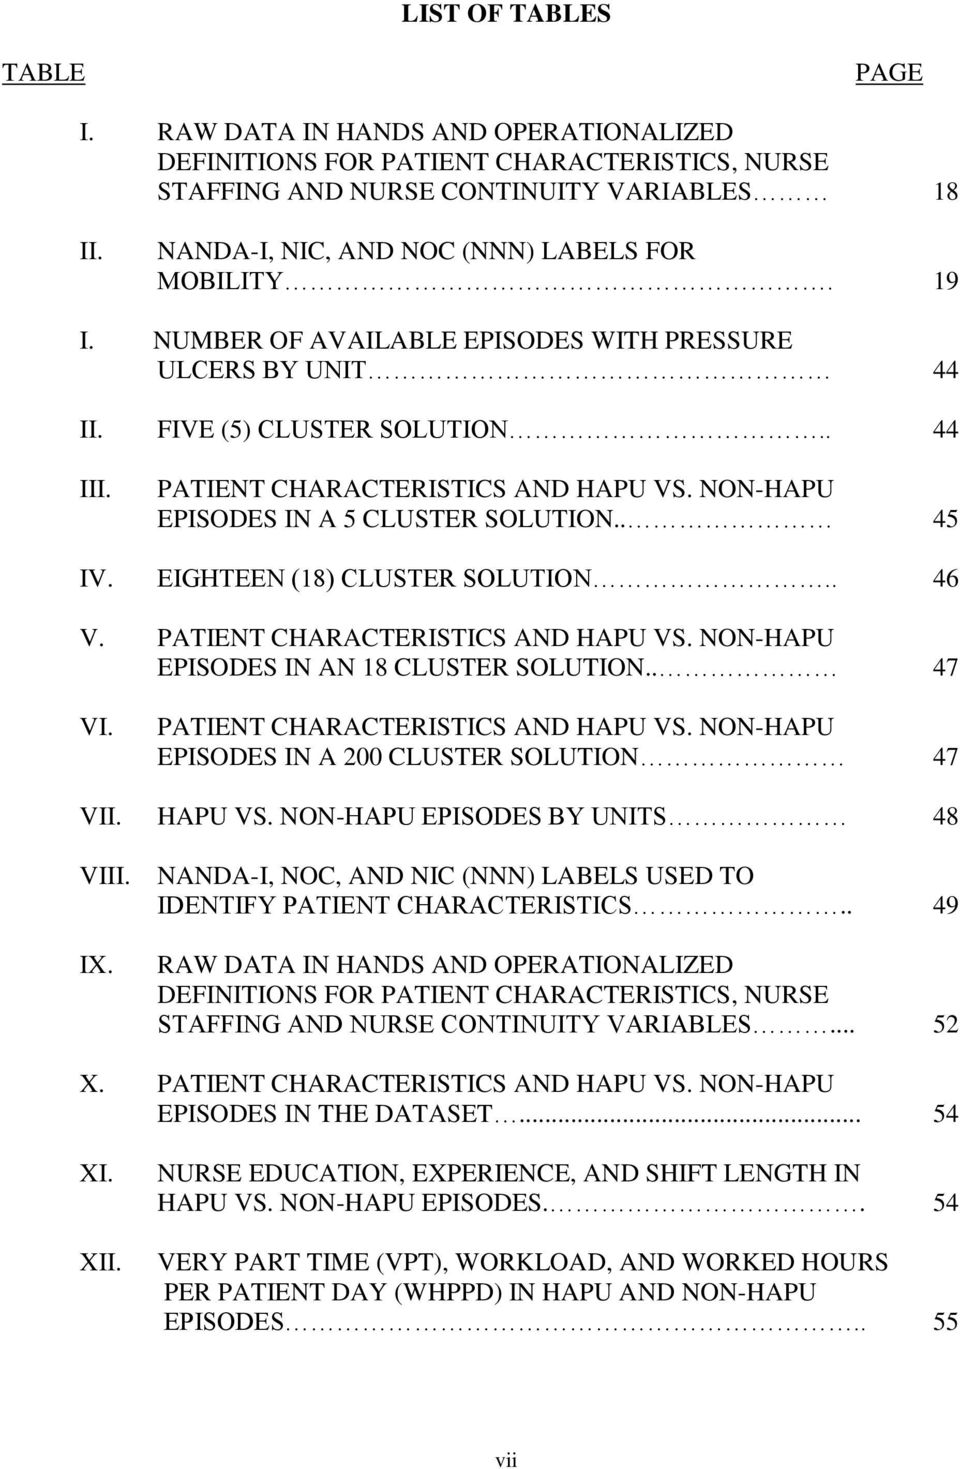 NON-HAPU EPISODES IN A 5 CLUSTER SOLUTION.. 45 IV. EIGHTEEN (18) CLUSTER SOLUTION.. 46 V. PATIENT CHARACTERISTICS AND HAPU VS. NON-HAPU EPISODES IN AN 18 CLUSTER SOLUTION.. 47 VI.